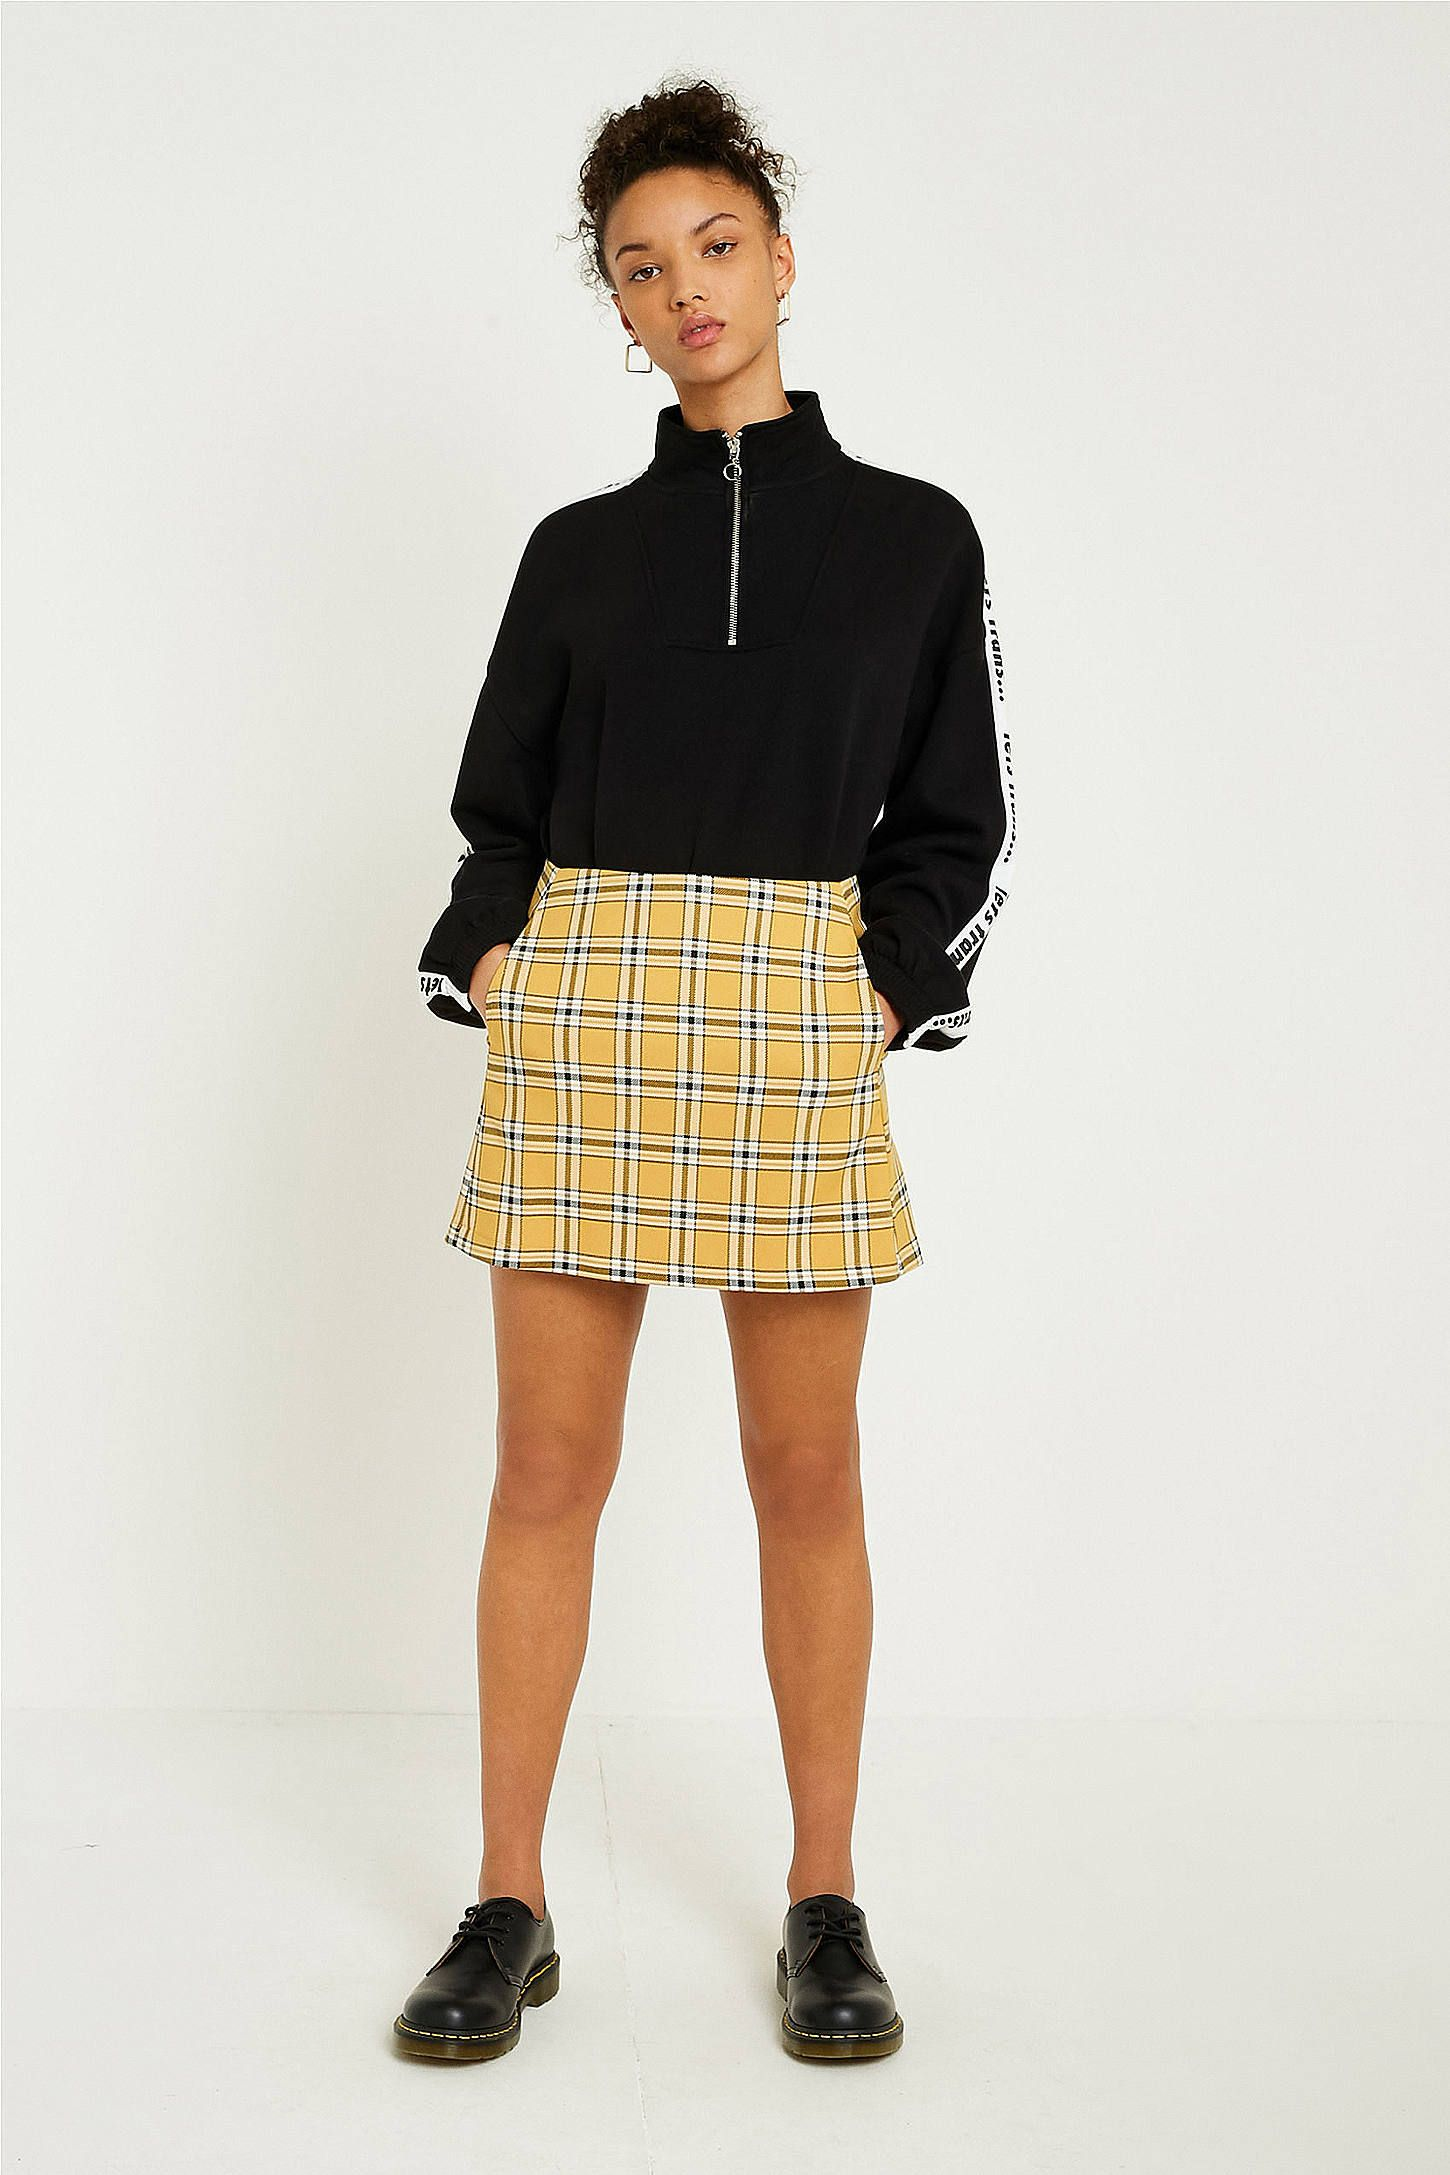 7d69146ea33f Shop UO Mustard Yellow Checked Pelmet Skirt at Urban Outfitters today. We  carry all the latest styles, colours and brands for you to choose from  right here.